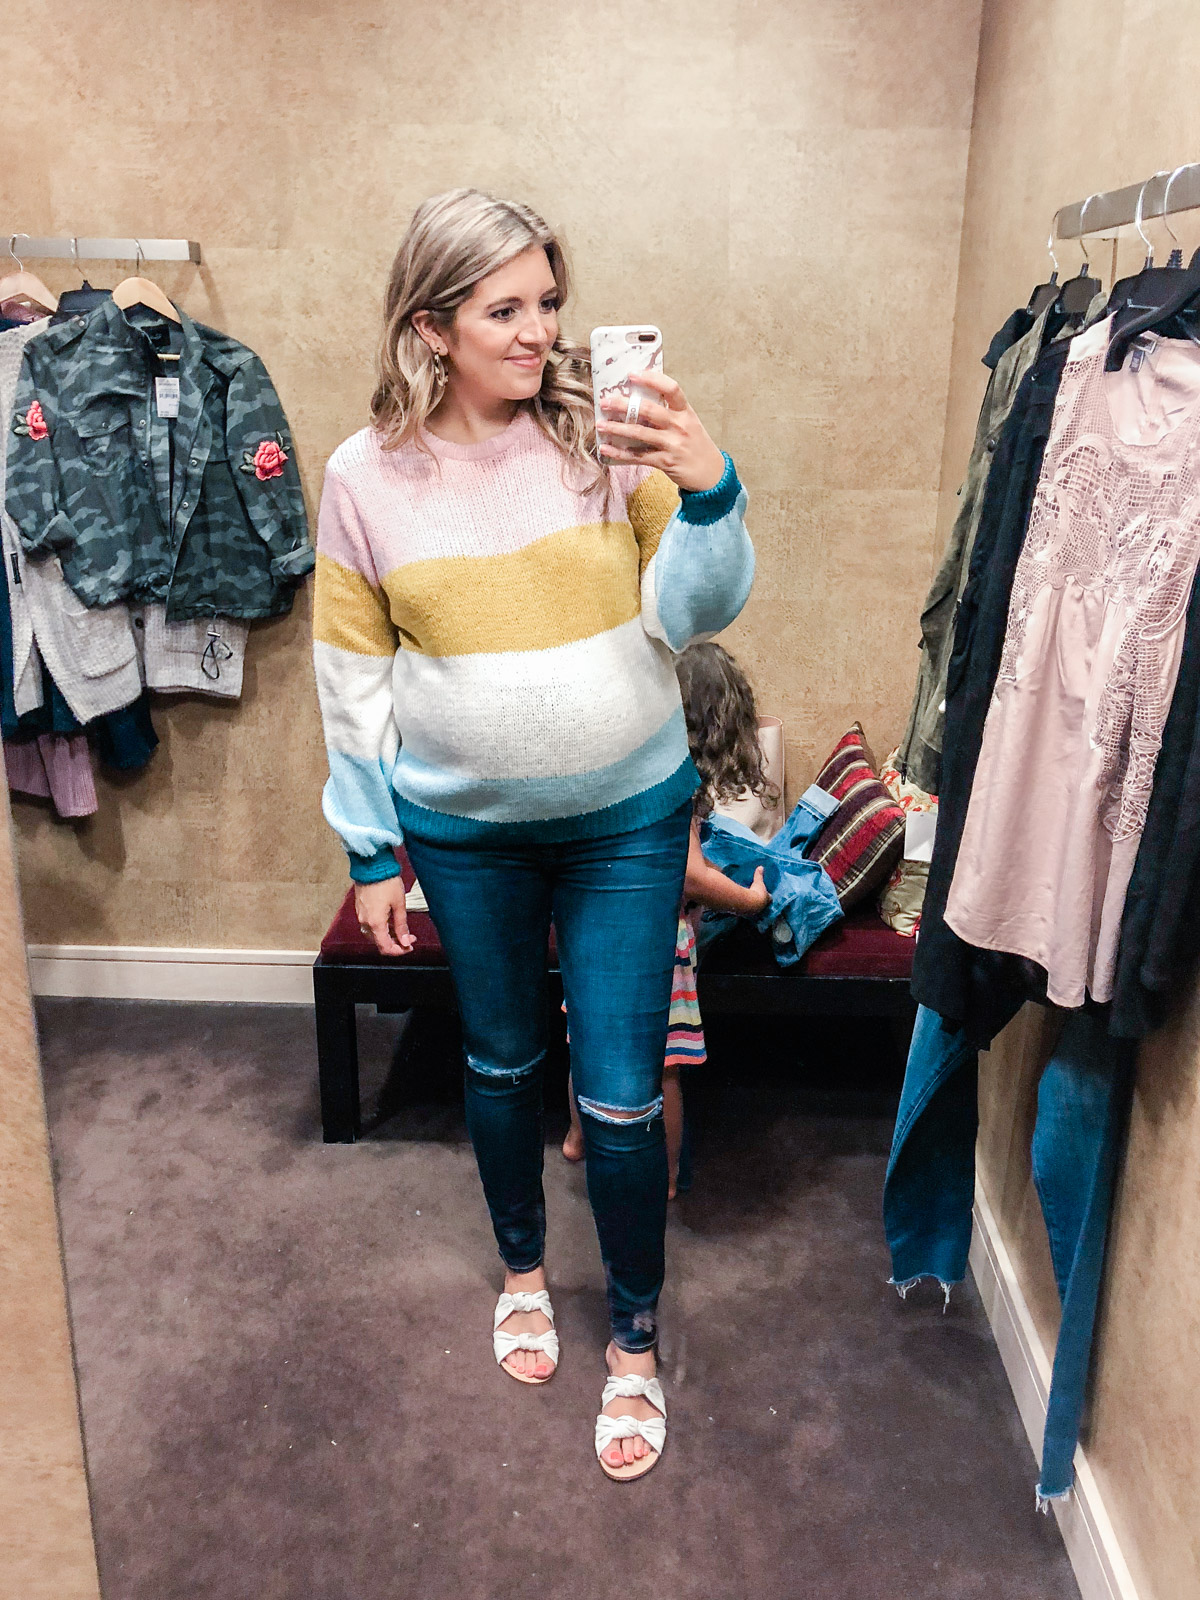 topshop colorblock sweater - Nordstrom anniversary sale 2018 try-on session: over 25 items reviewed for fit and size! | bylaurenm.com